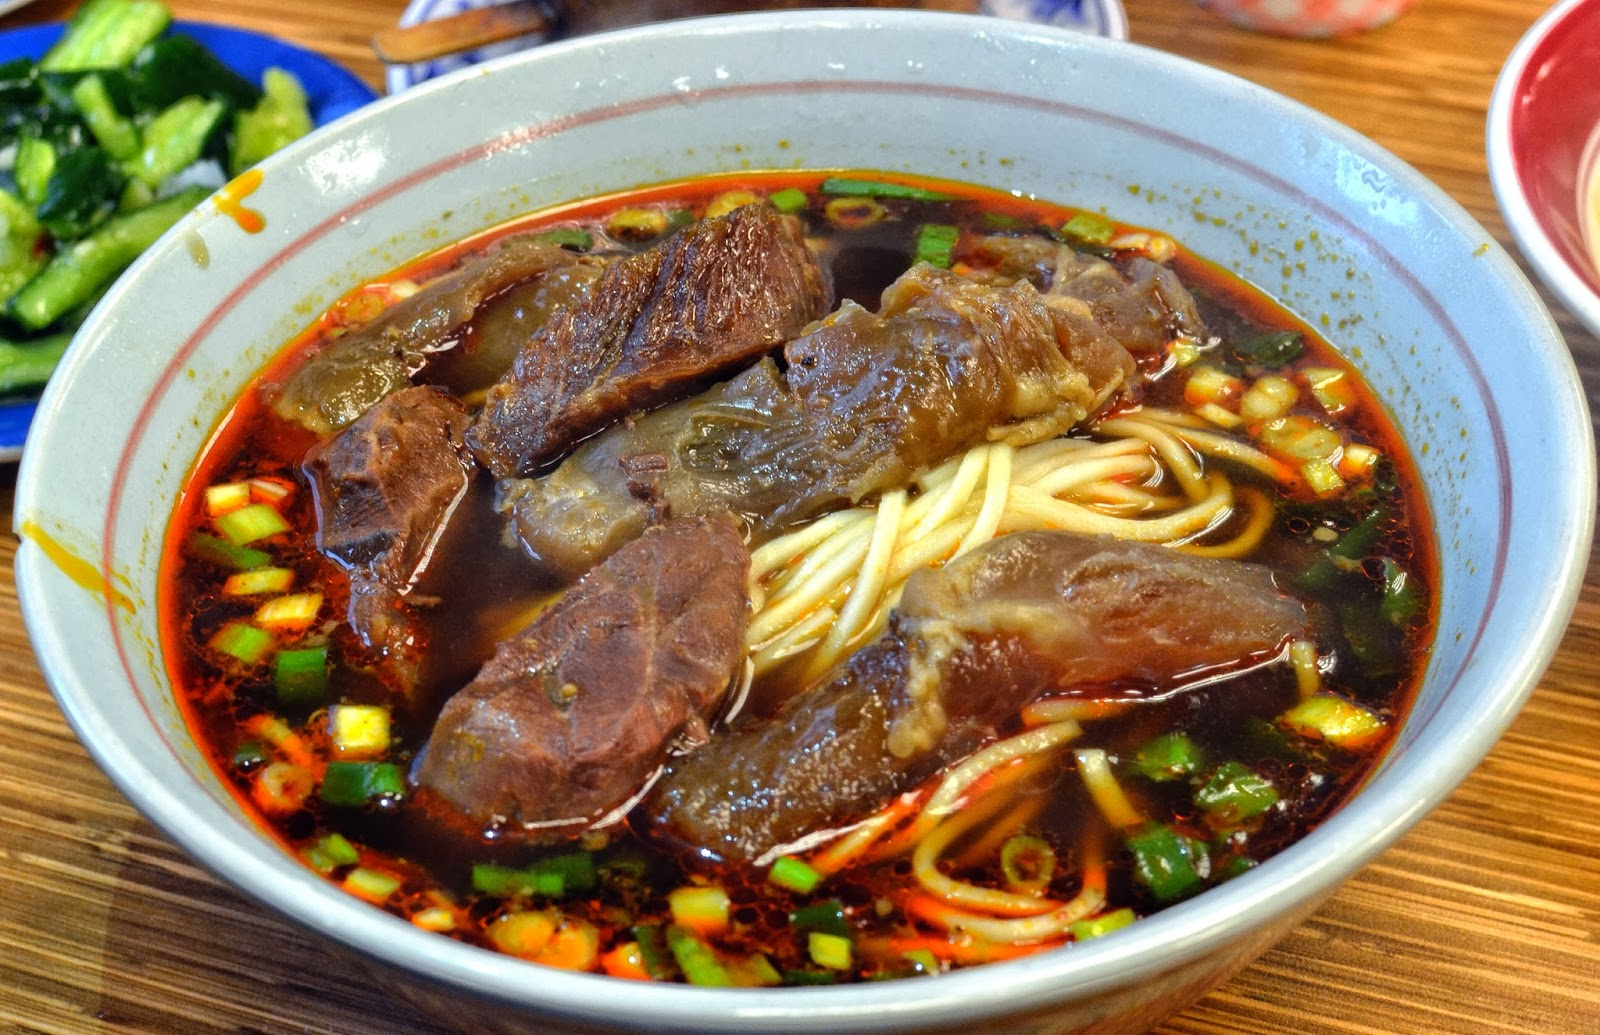 YONG KANG BEEF NOODLE Taipei Taiwan beef noodles